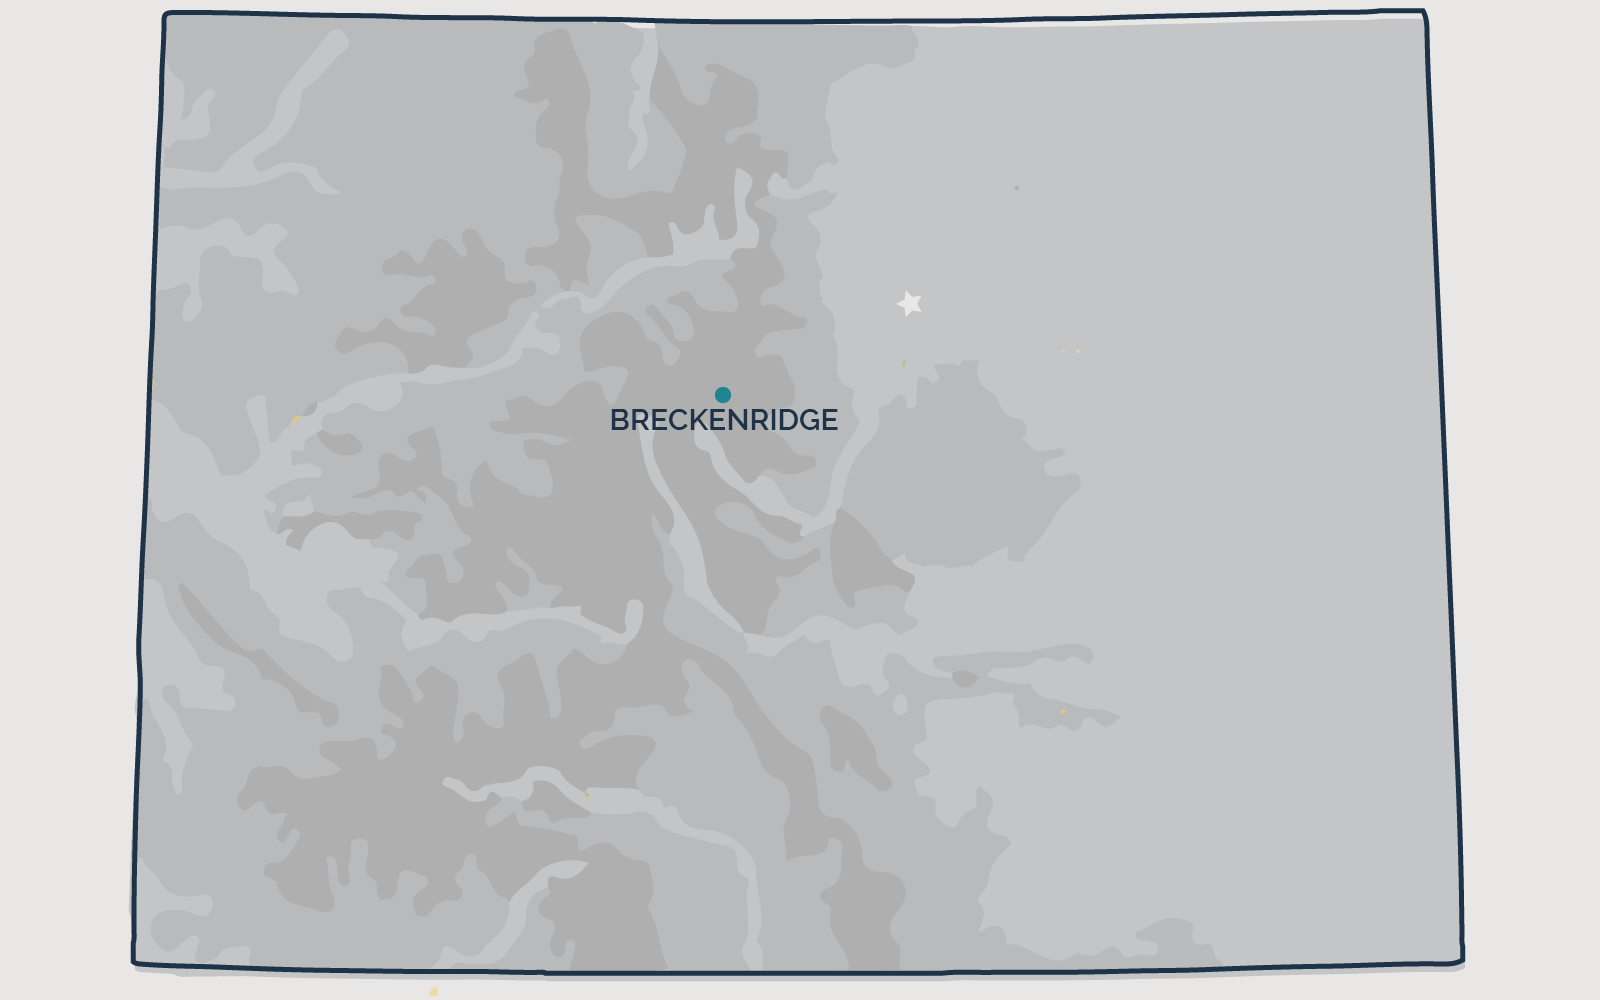 Breckenridge, Colorado - Your health and satisfaction are important to us. We are located in Littleton, Colorado and are pleased to provide our professional, honest, and affordable radon testing and mitigation services to happy and satisfied customers all along the front range of our beautiful State of Colorado.